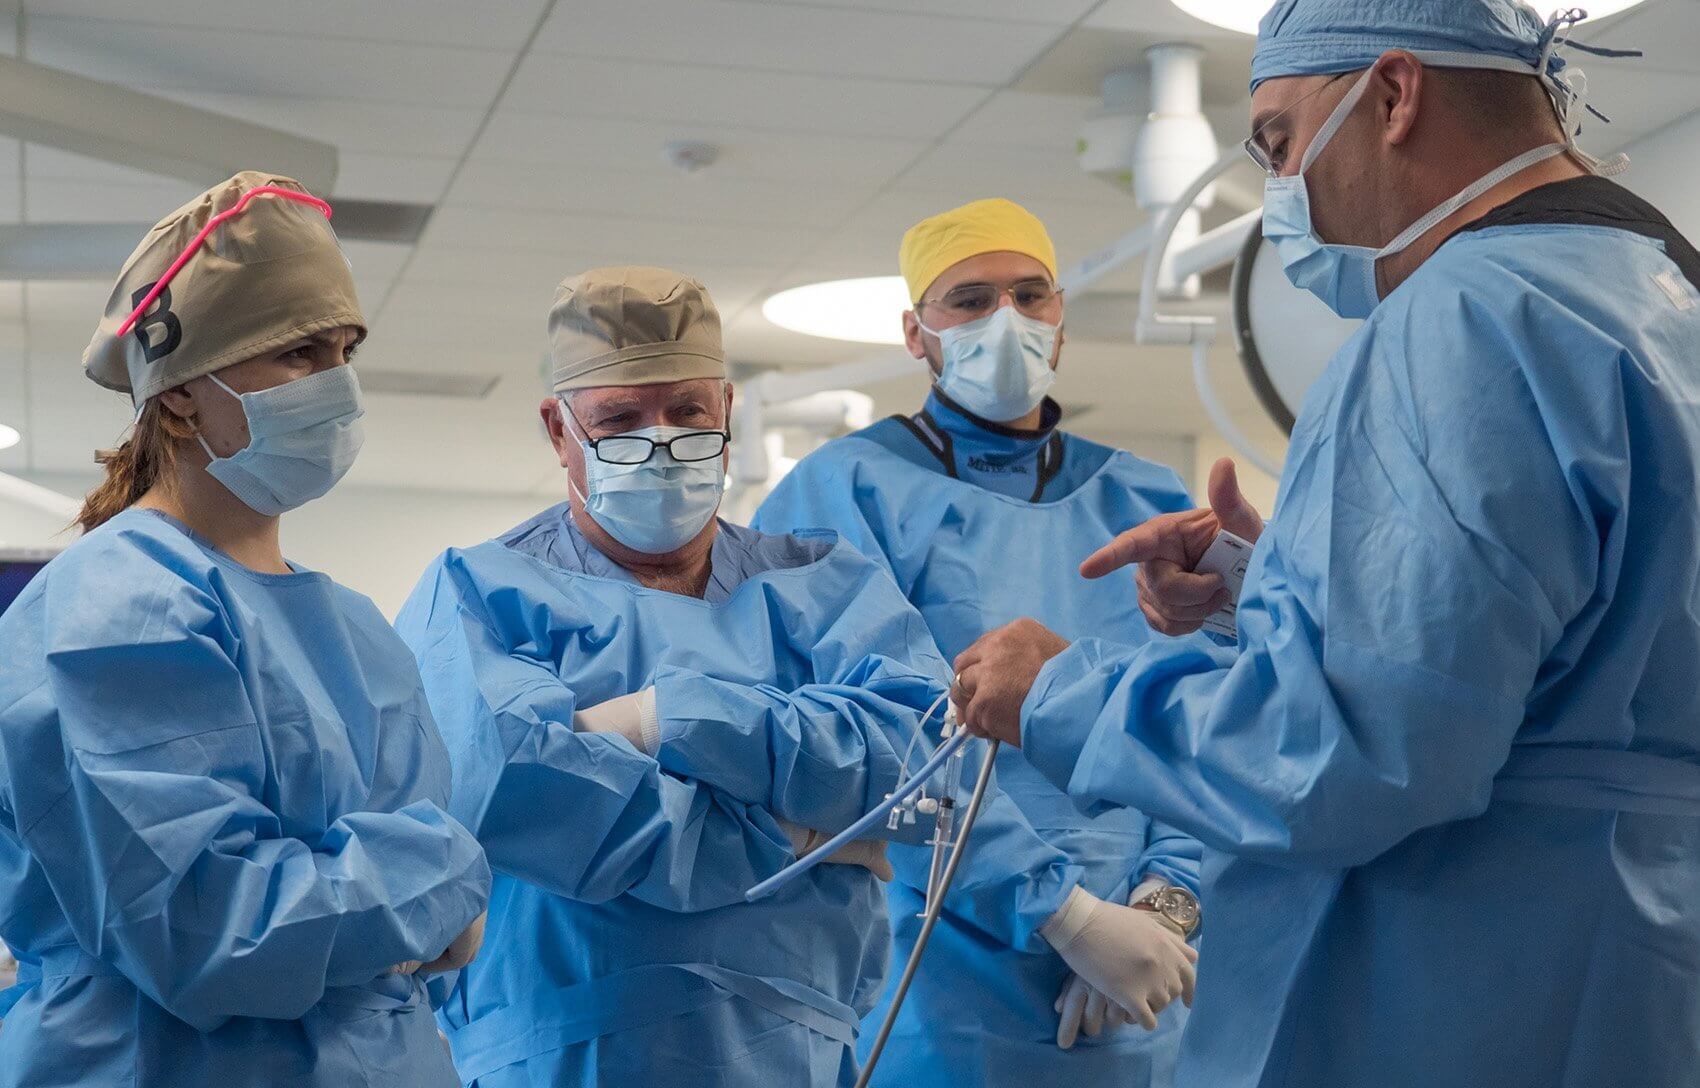 While heart surgeons have traditionally relied on open procedures, training in these minimally invasive techniques is important to better serve patients and improve outcomes.